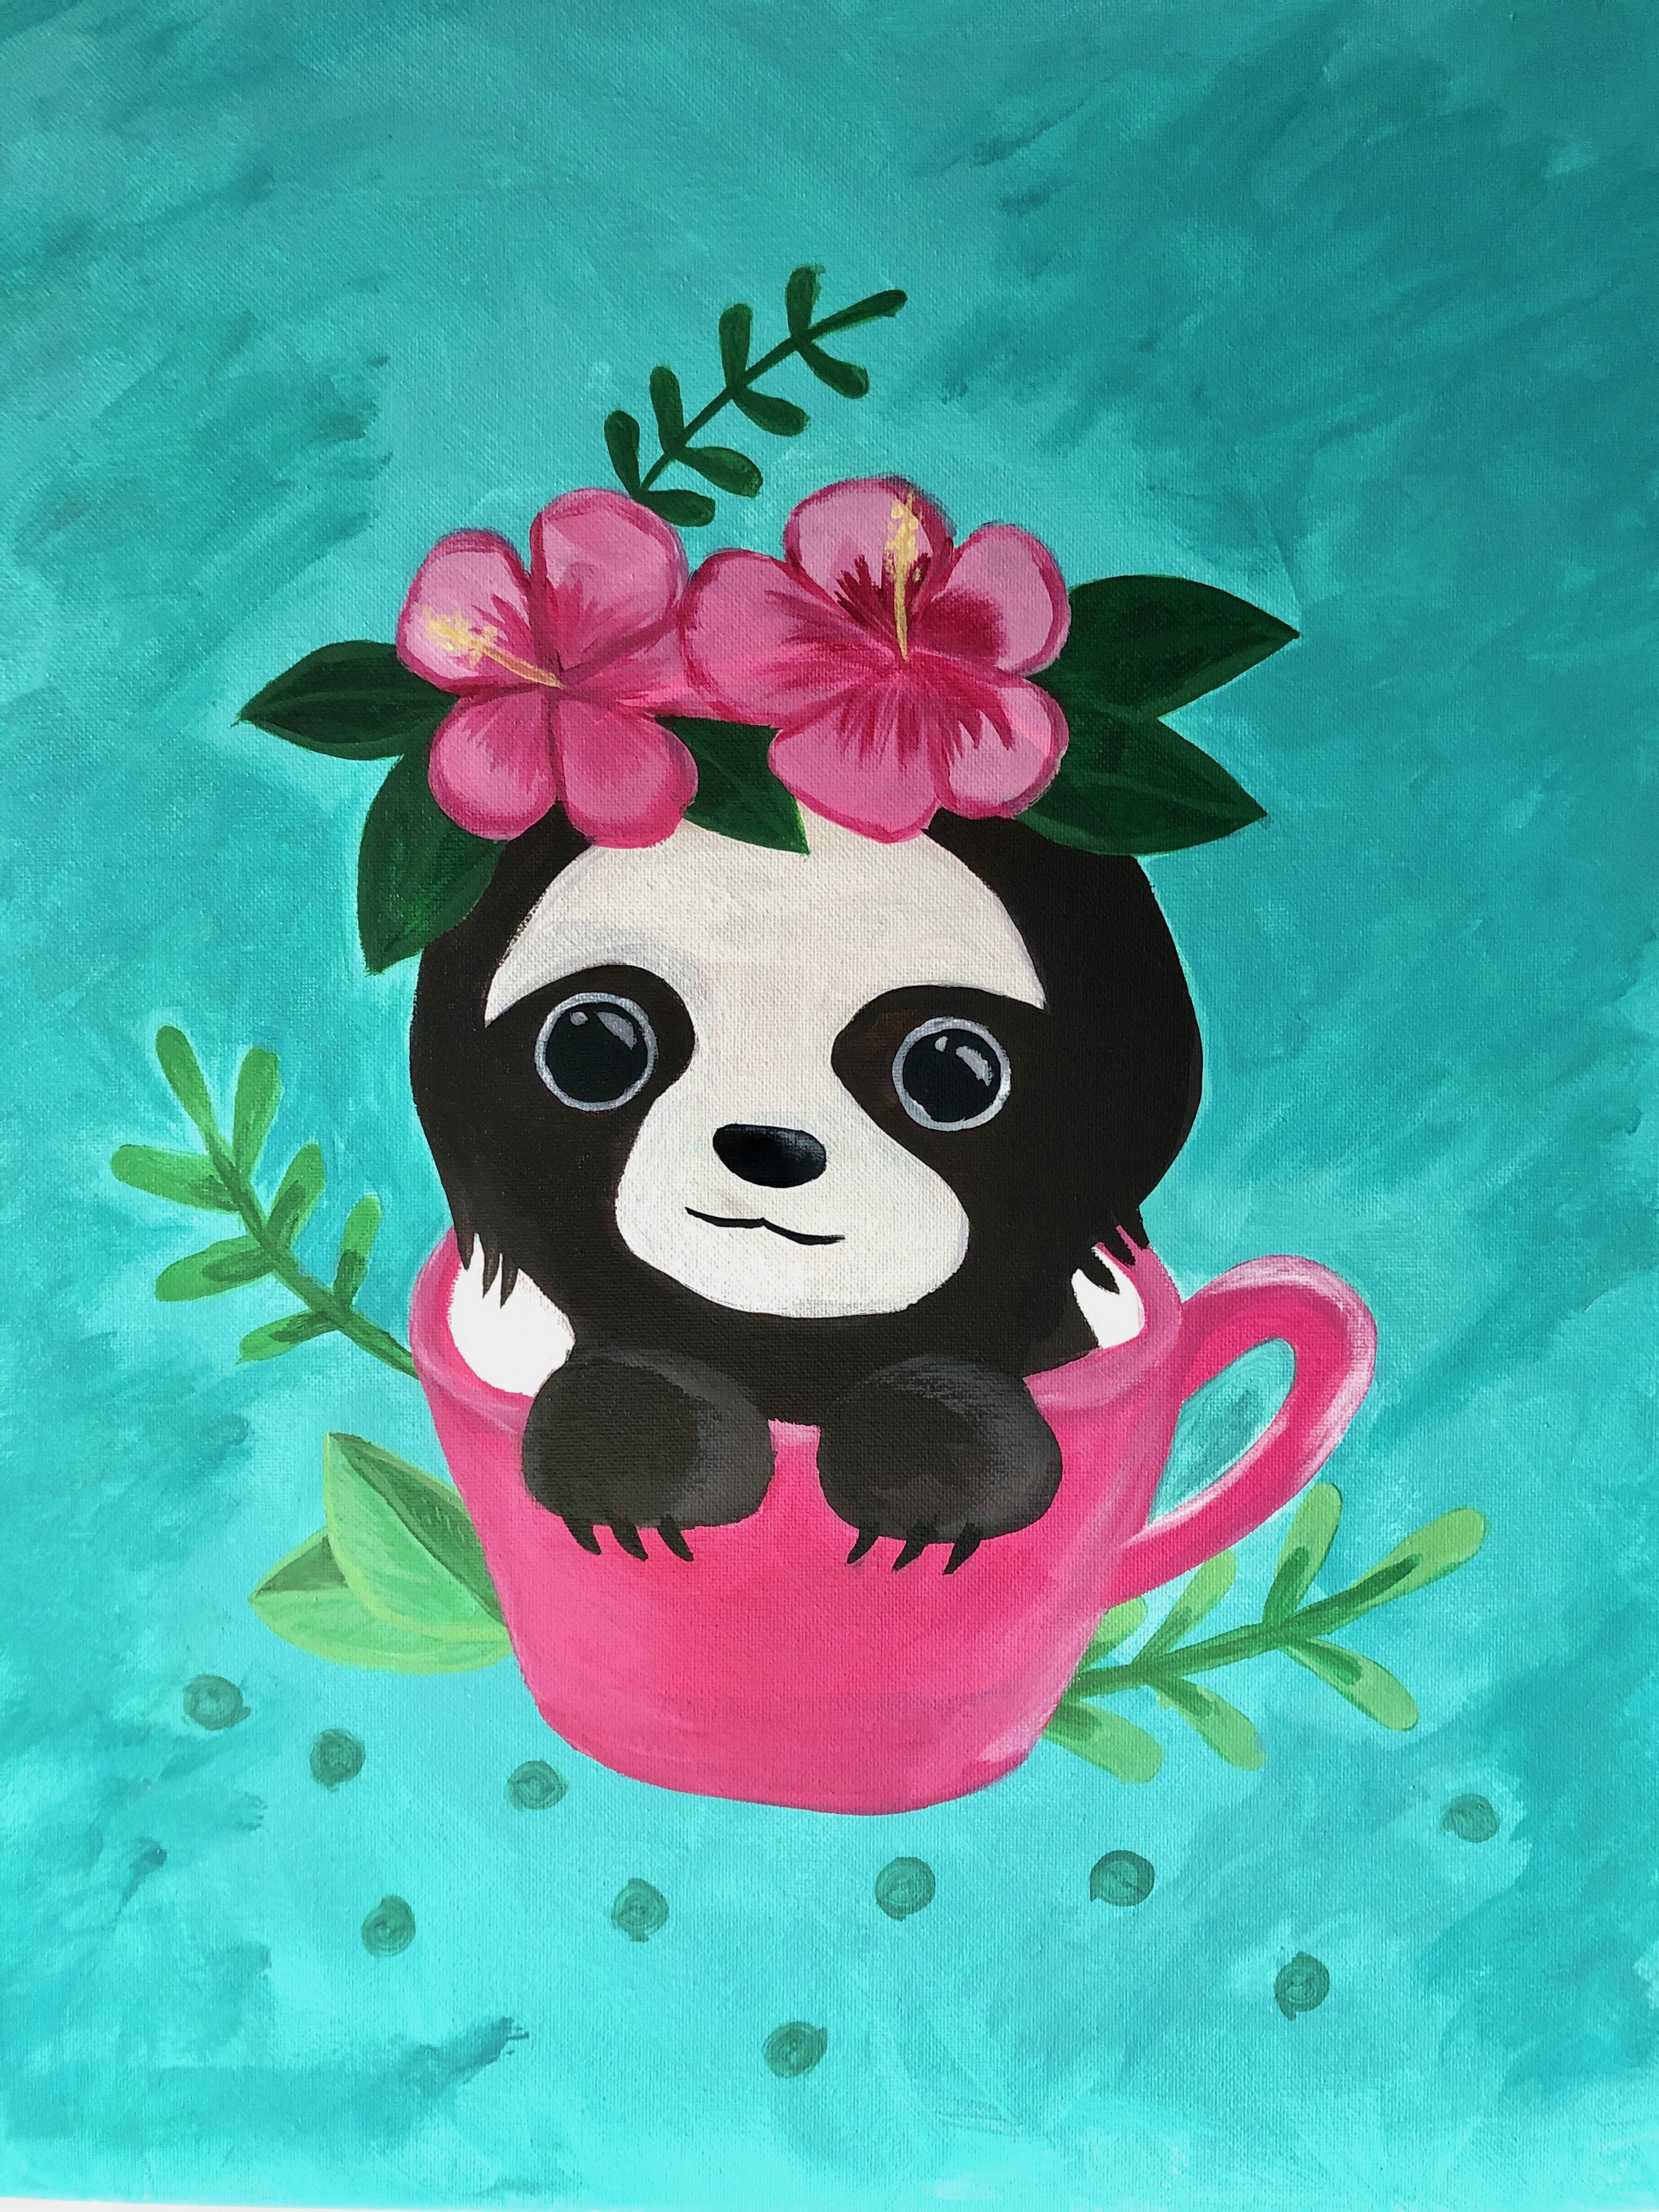 A A Cup of Sloth experience project by Yaymaker